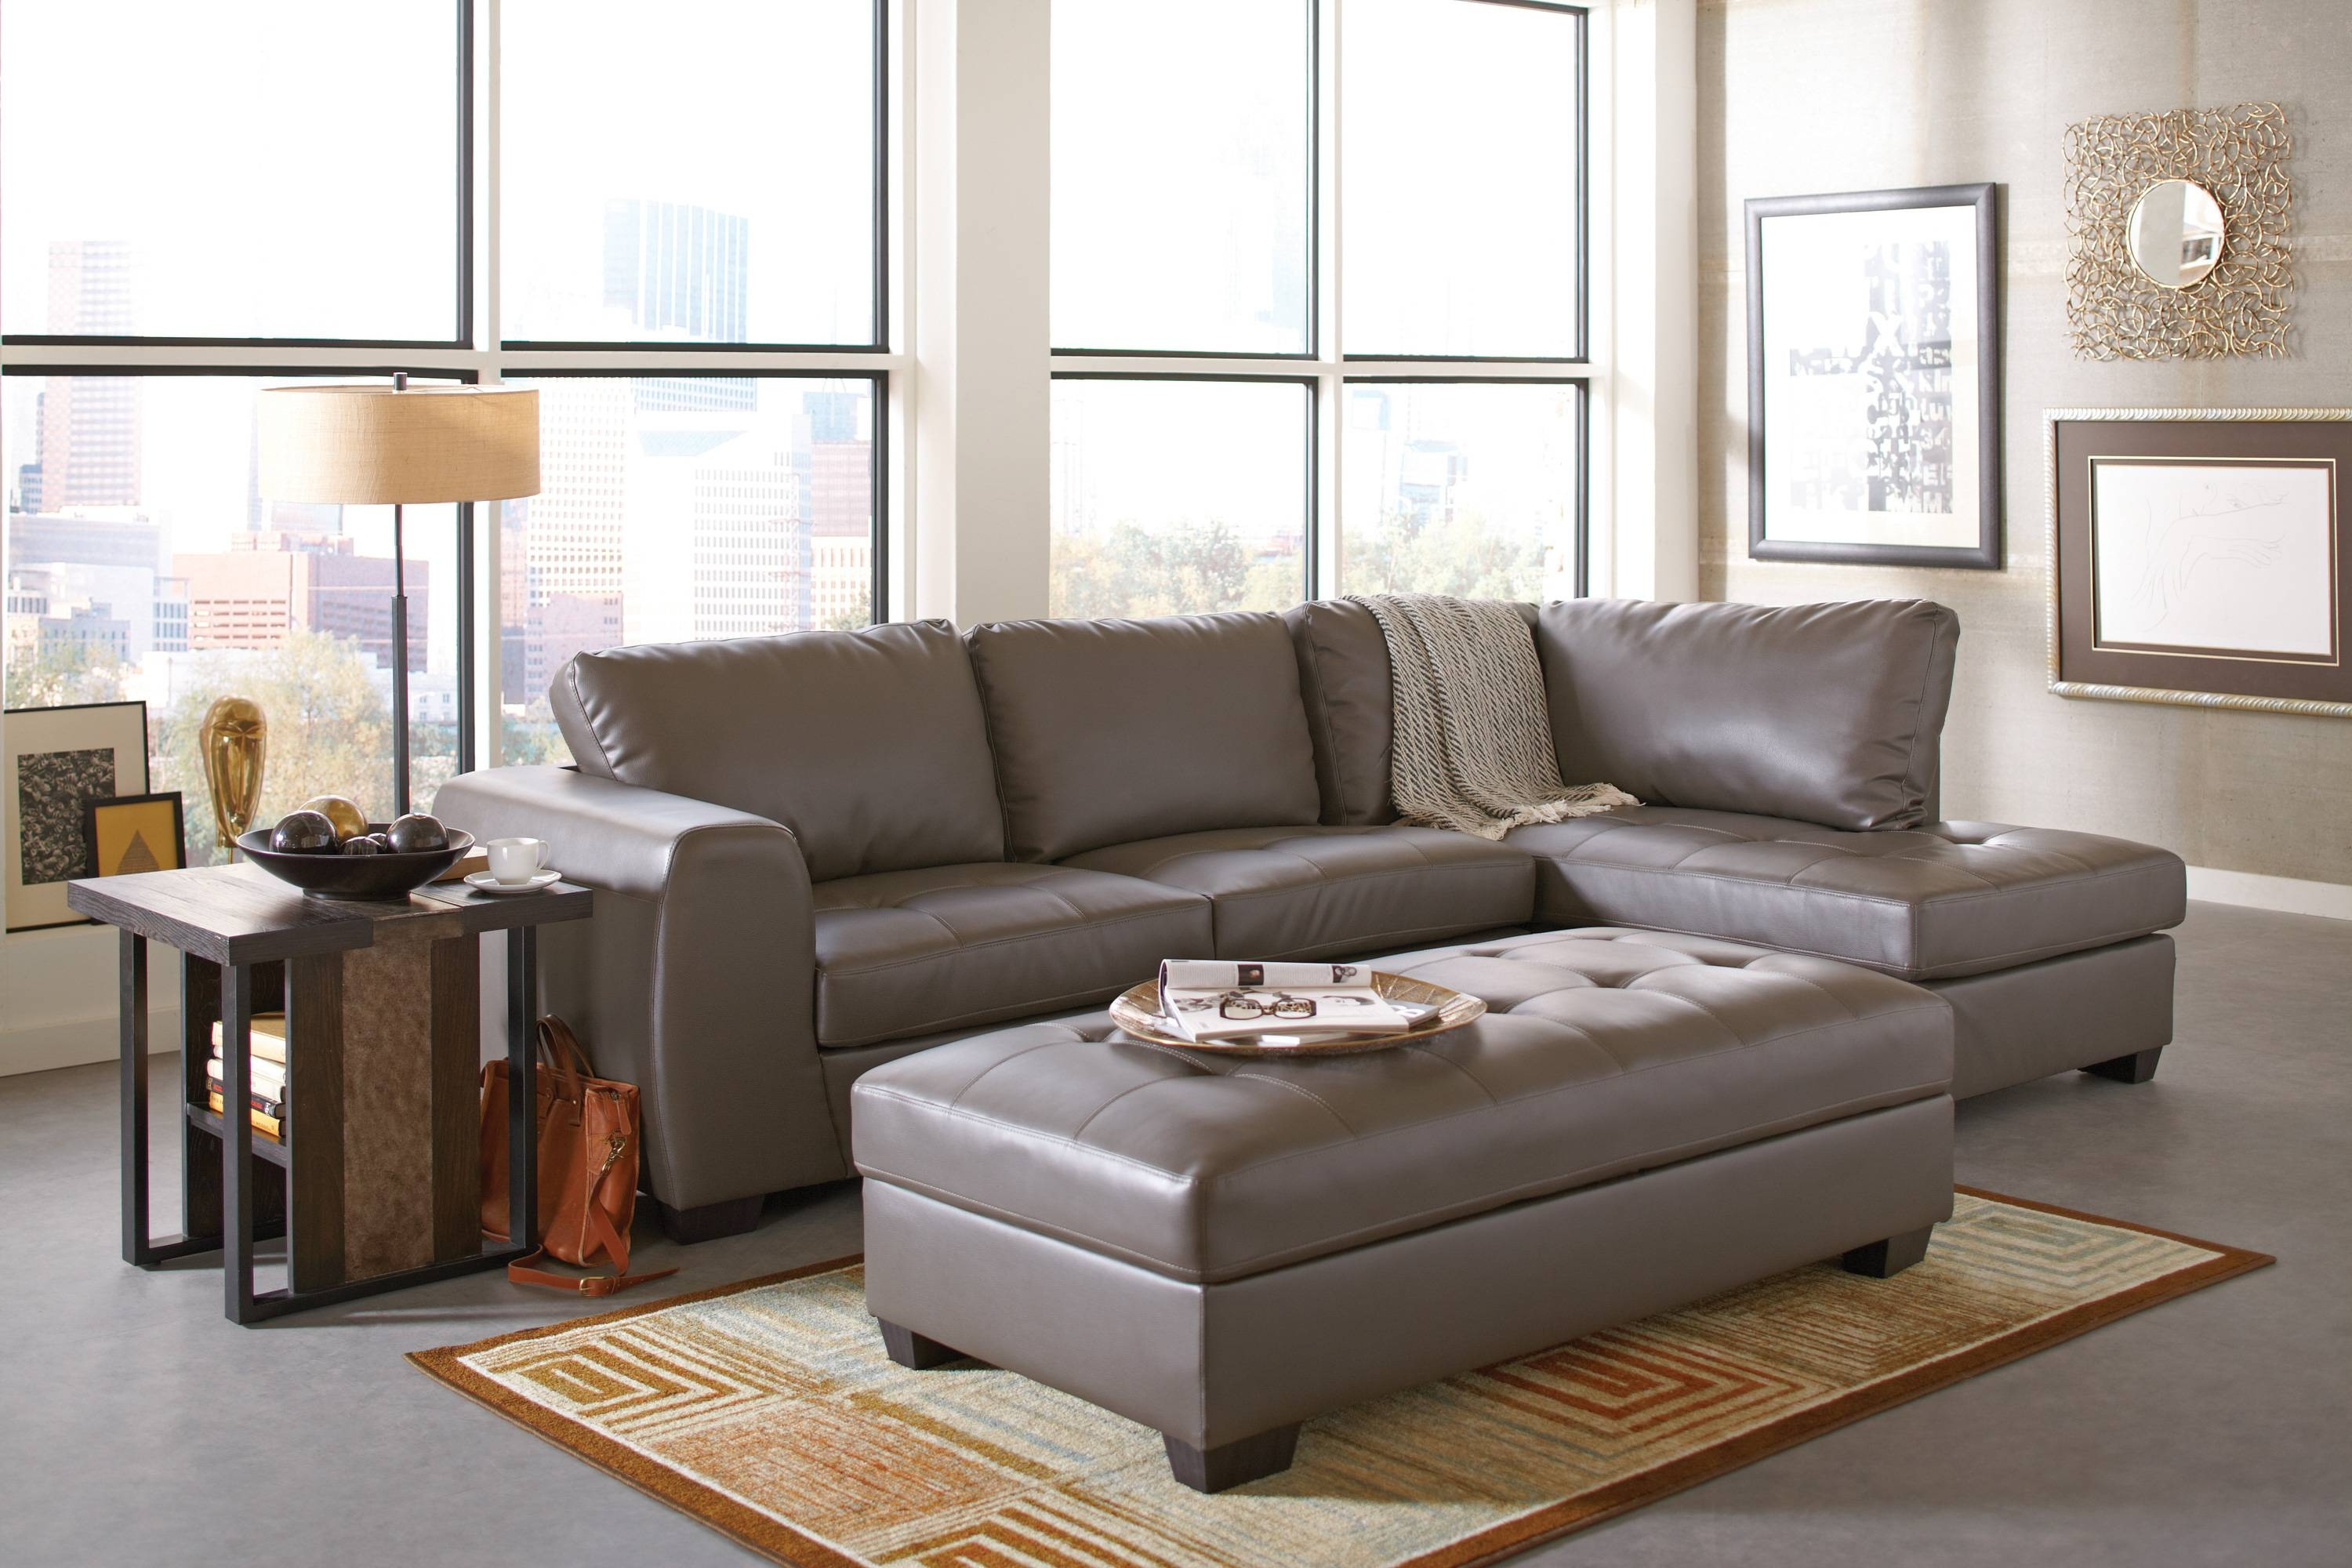 Furniture: Mesmerizing Costco Sectionals Sofa For Cozy Living Room intended for Leather Sofa Sectionals For Sale (Image 9 of 30)